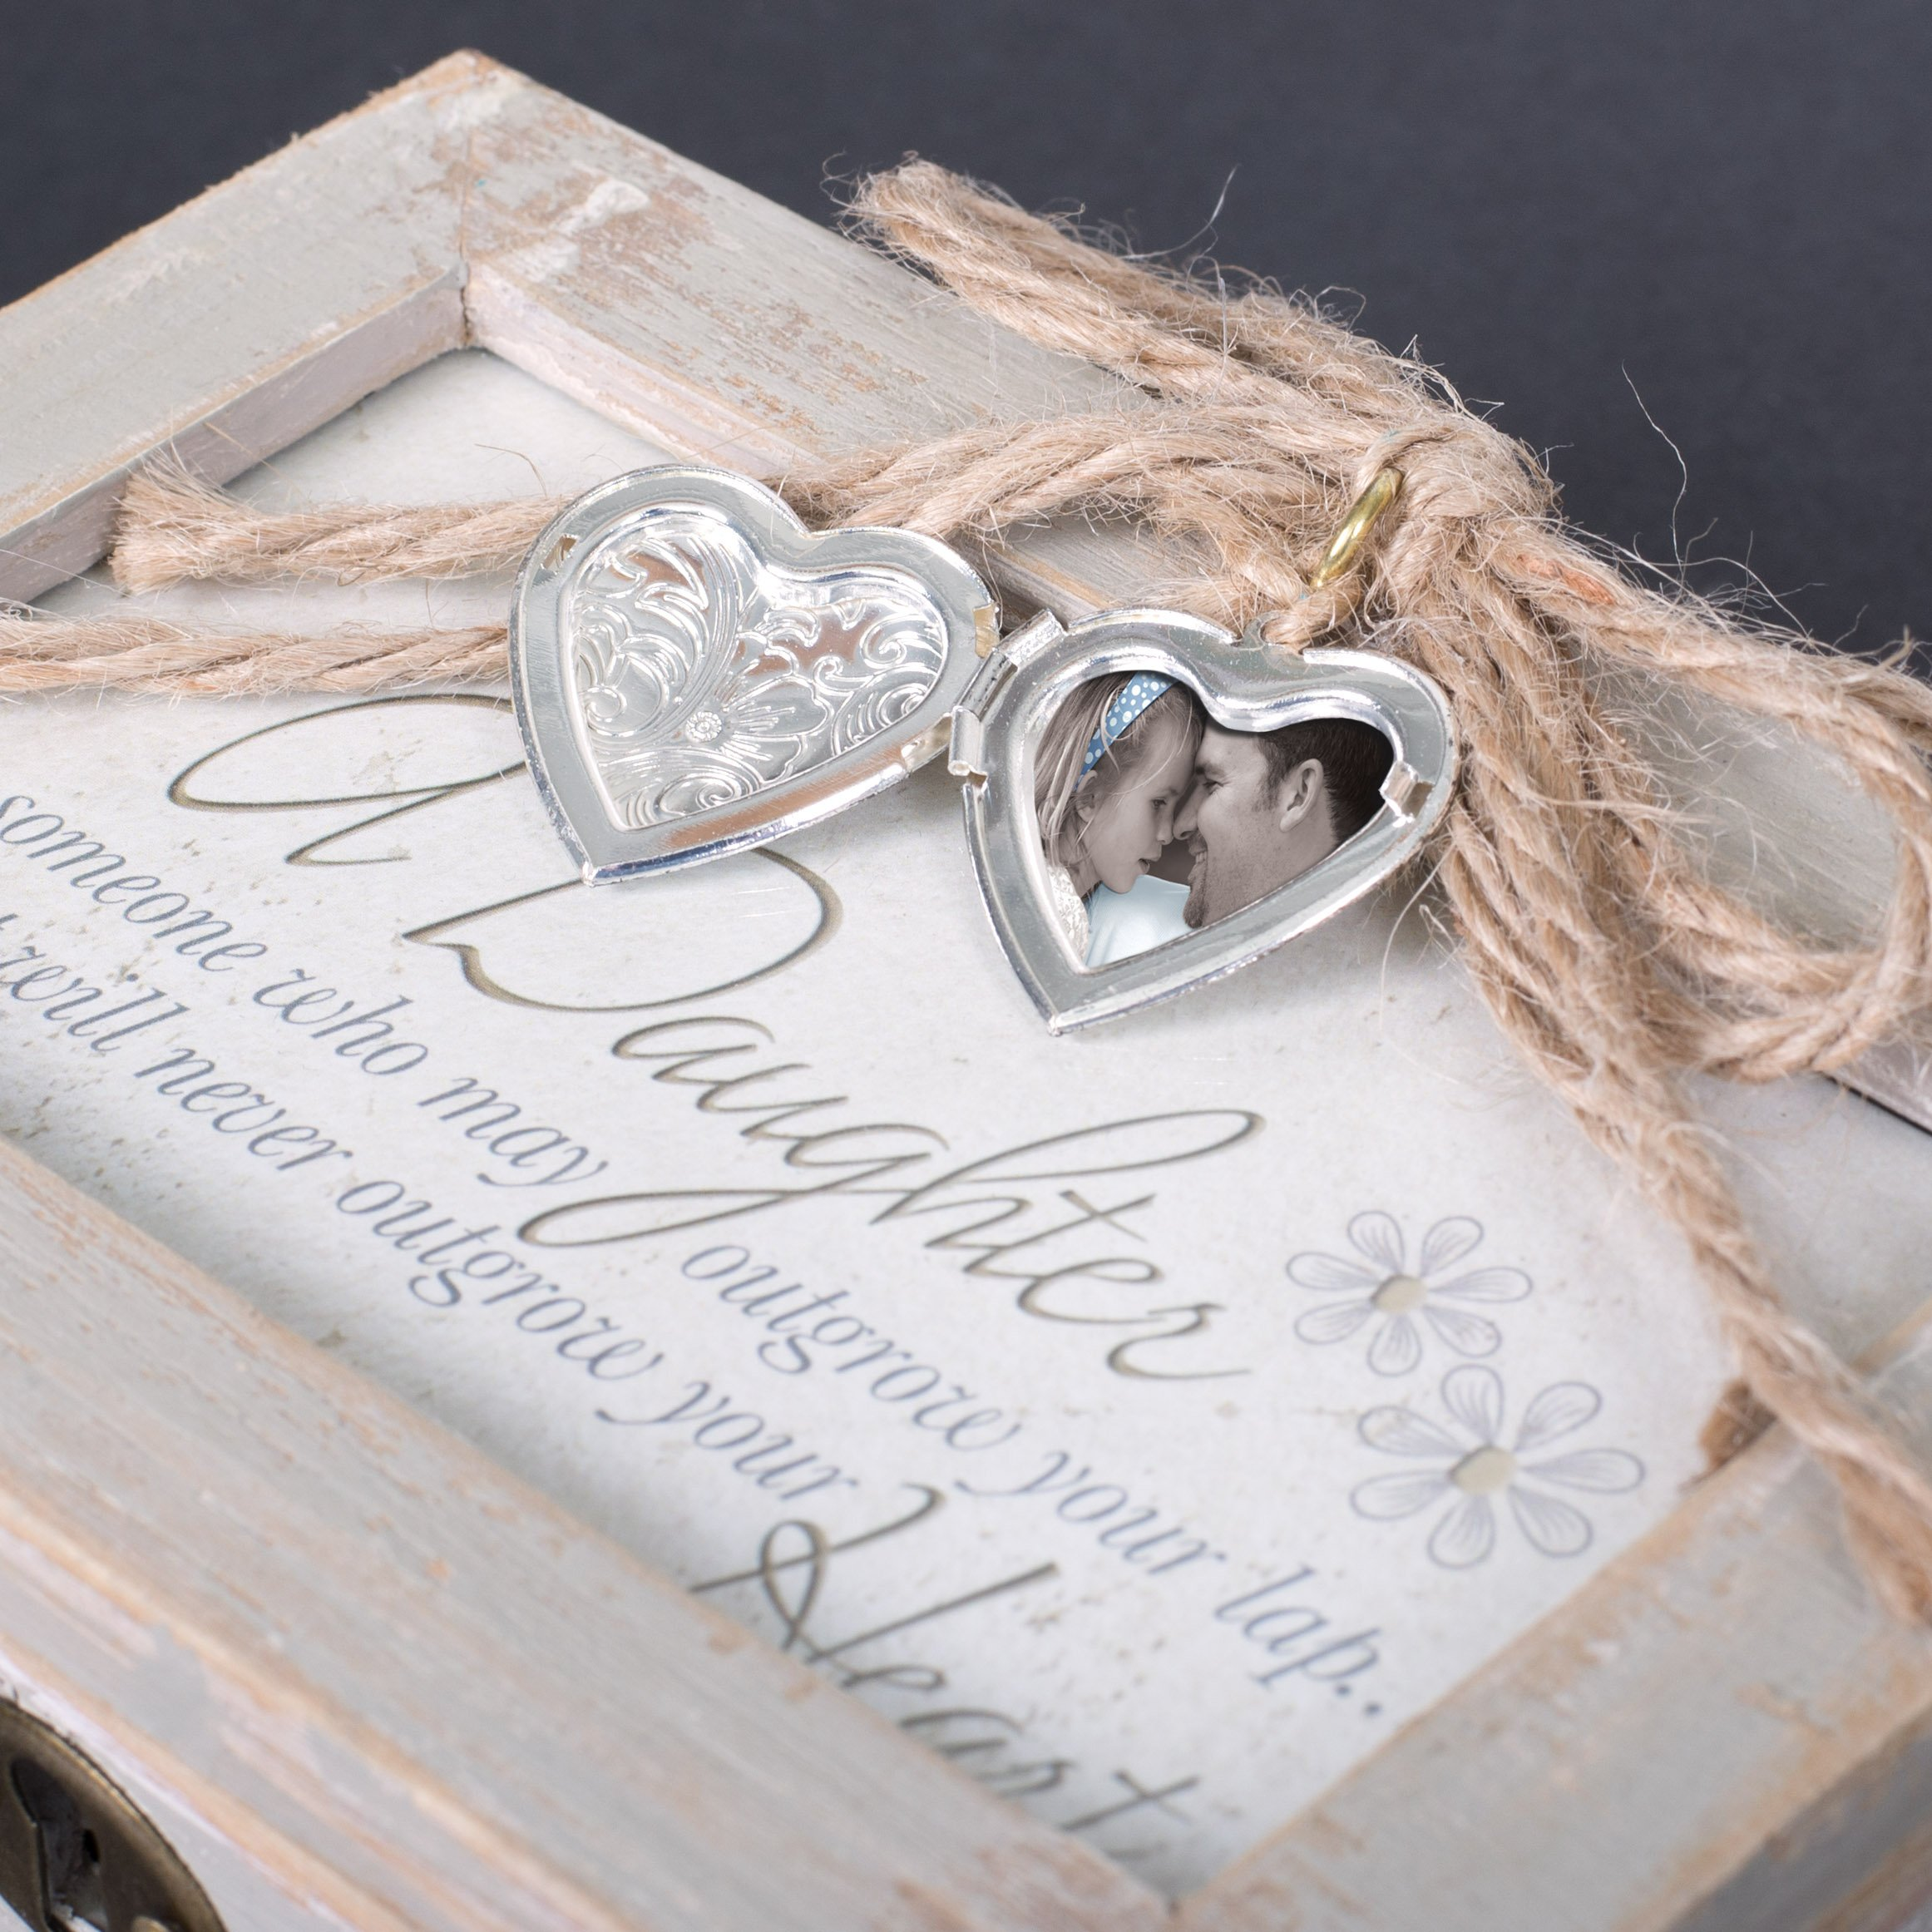 Mom Grateful for Love Distressed Wood Locket Jewelry Music Box Plays Tune Wind Beneath My Wings by Cottage Garden (Image #4)